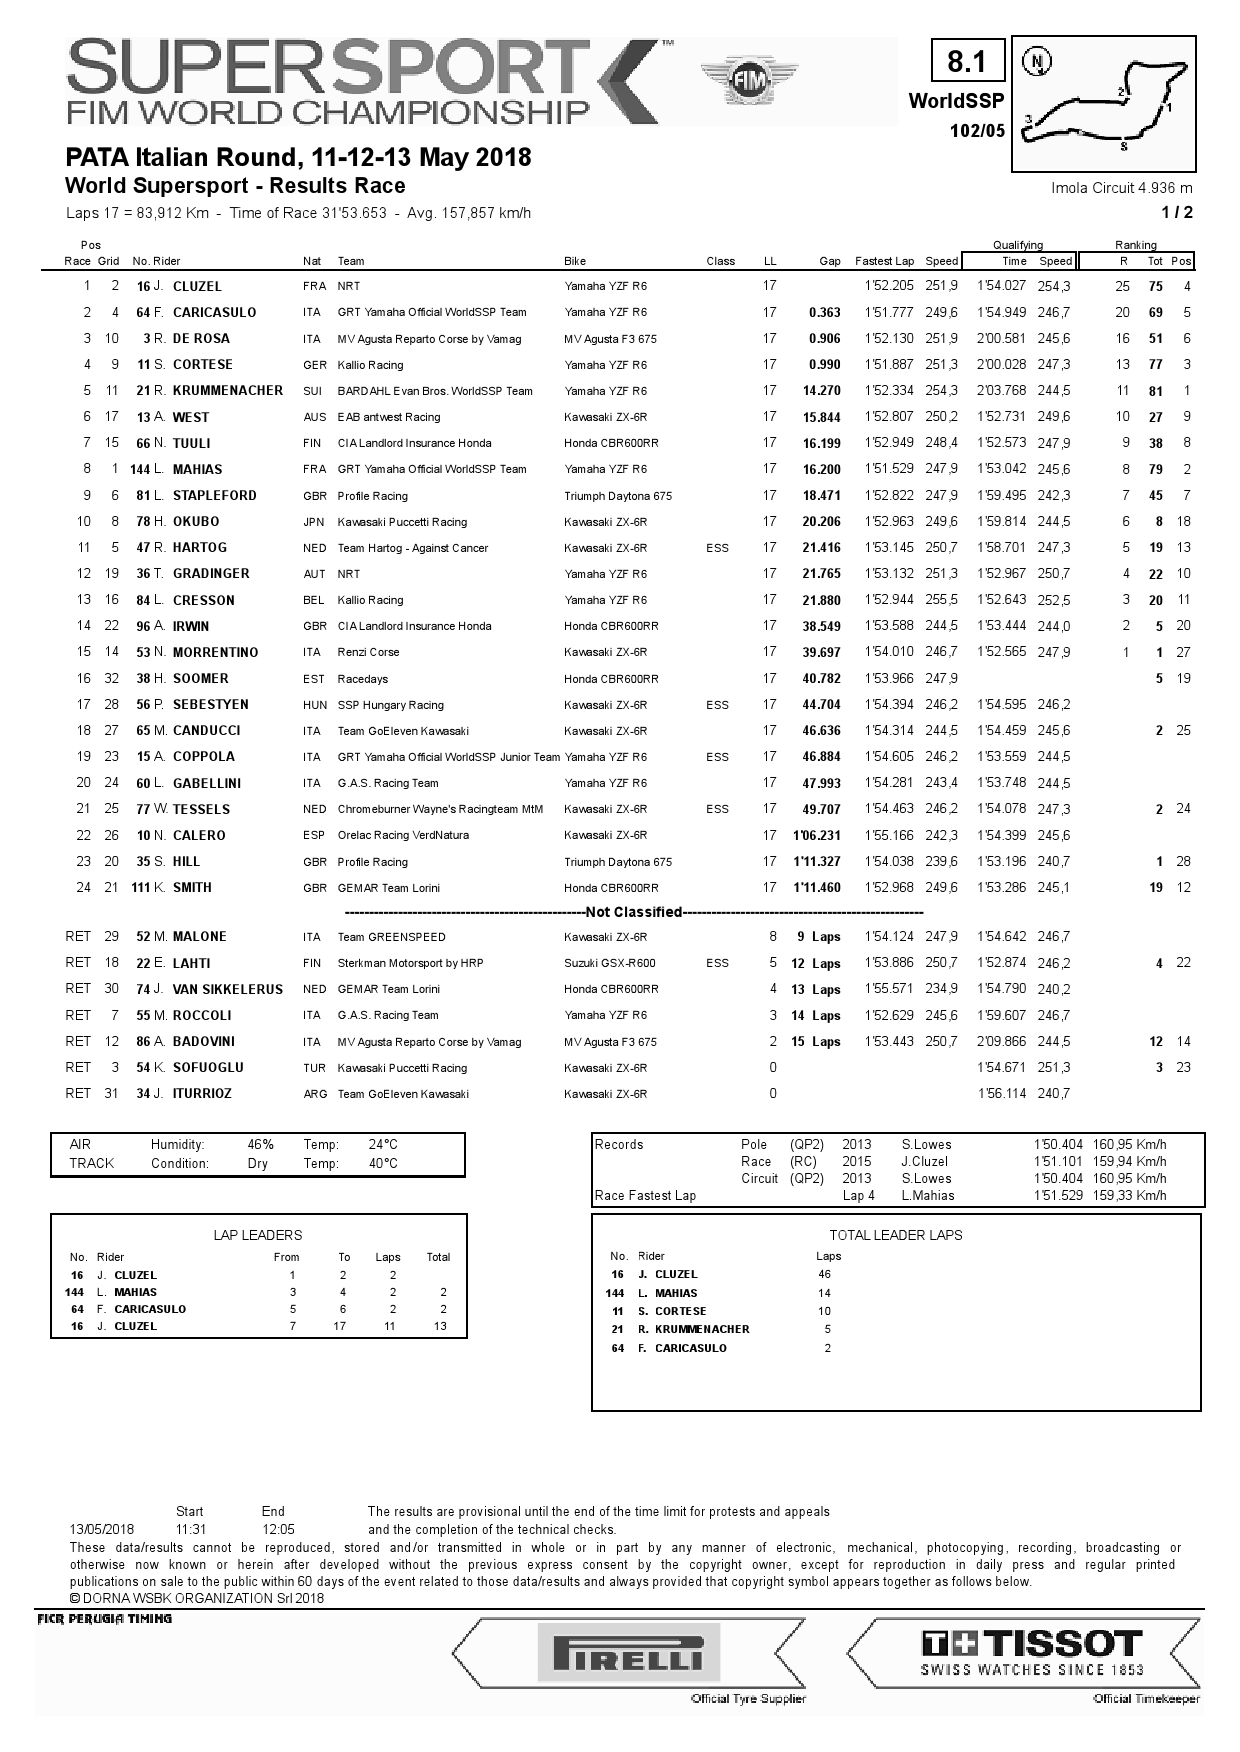 Результаты 5 этапа World Supersport, Imola, 13/05/2018